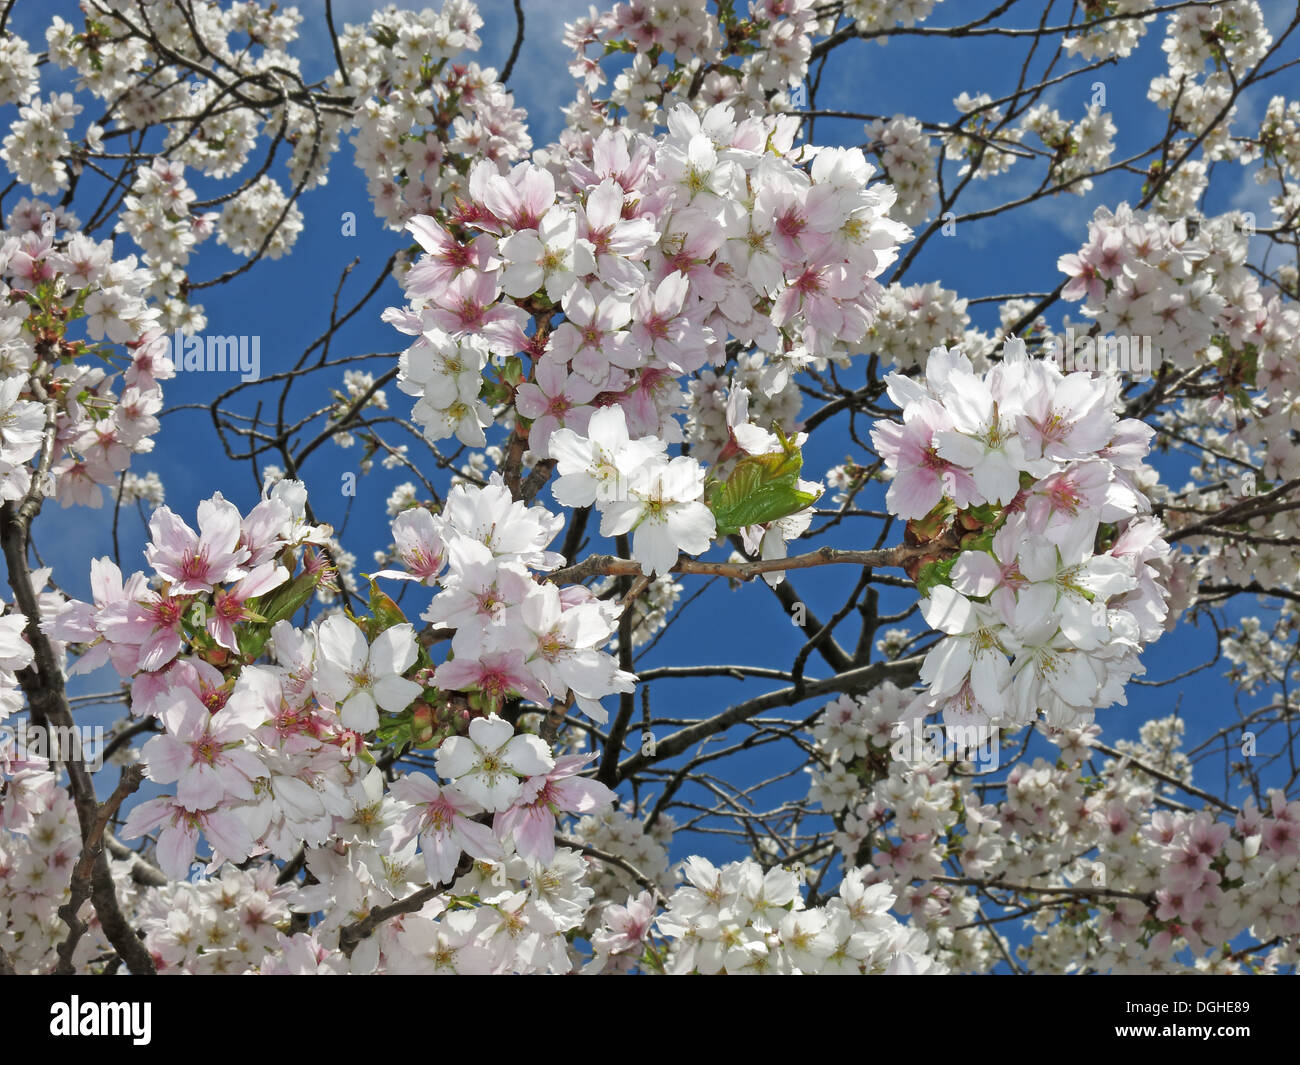 season,seasons,4seasons,four,skies,UK,Blossom,flowers,against,a,deep,blue,sky,England,United,Kingdom,western,hemisphere,life,springs,forth,love,good,to,be,alive,bloom,blooming,sprung,has,fruit,tree,trees,Sakura,Japan,Japanese,blosoms,almond,Gotonysmith,pollen,to,pollinators,insect,insects,bees,cross,polination,initiate,cross-pollination,necessary,to,reproduce,by,producing,fruit